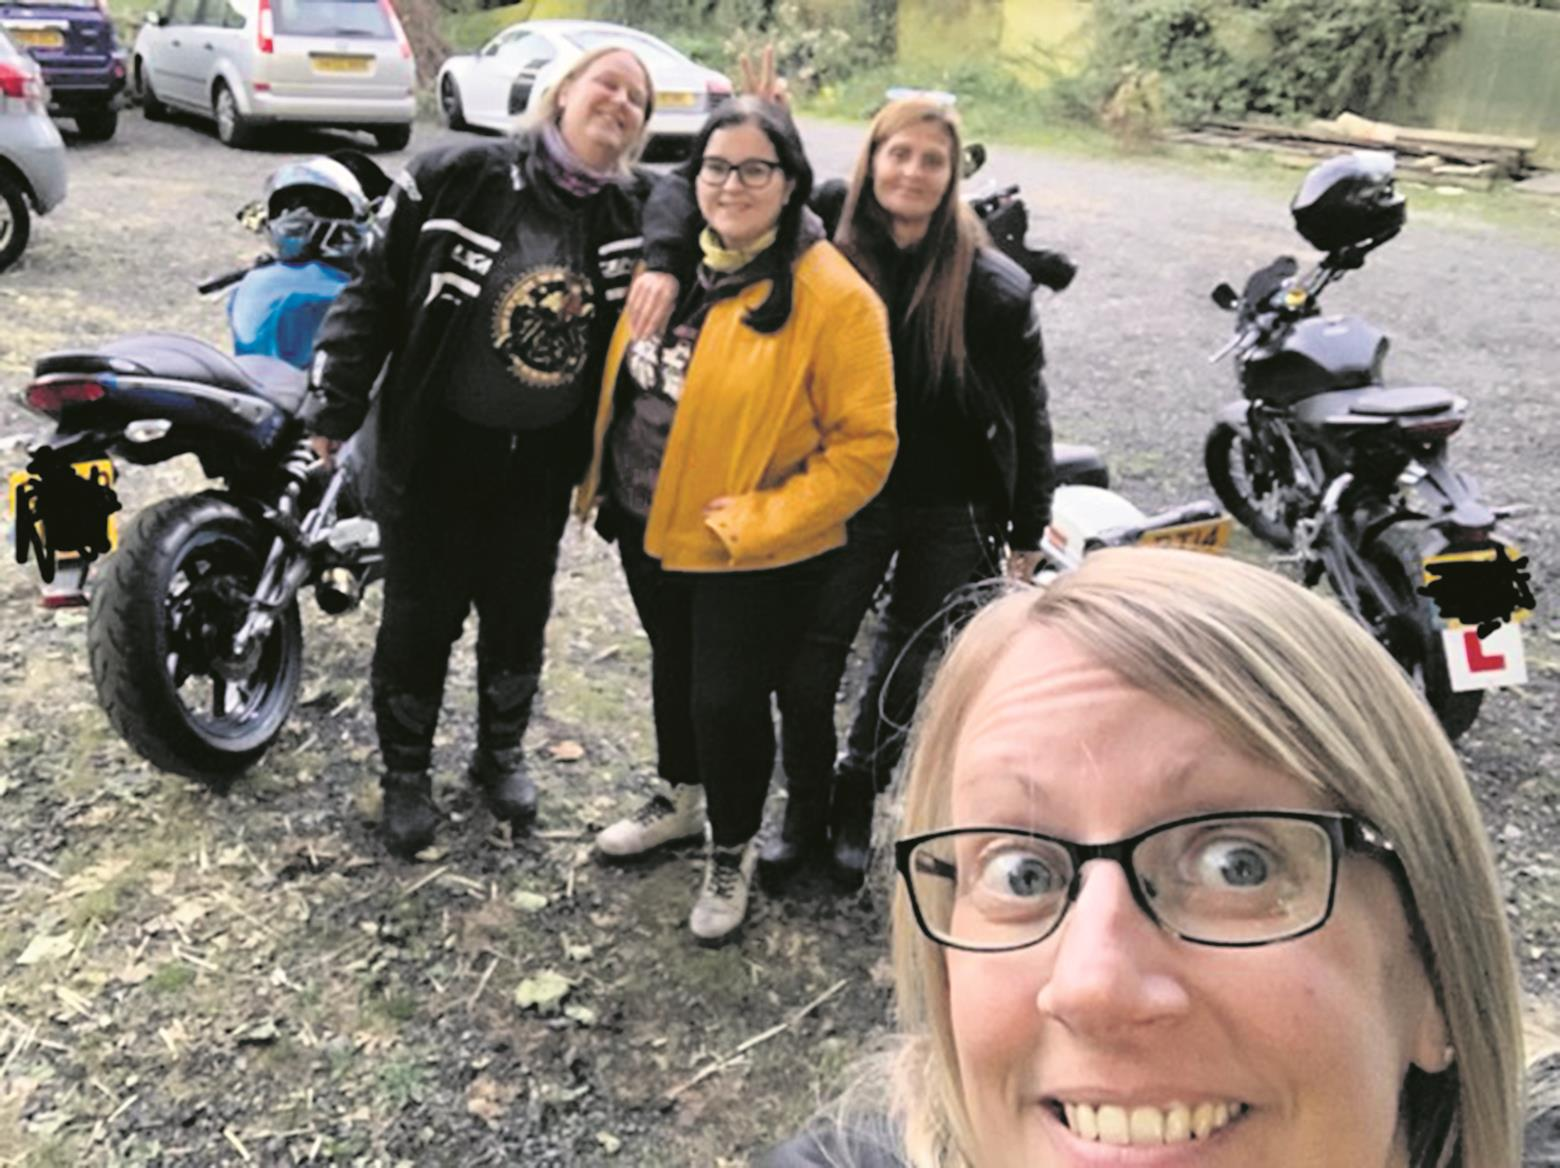 Angi Todd bags a selfie with some riding friends